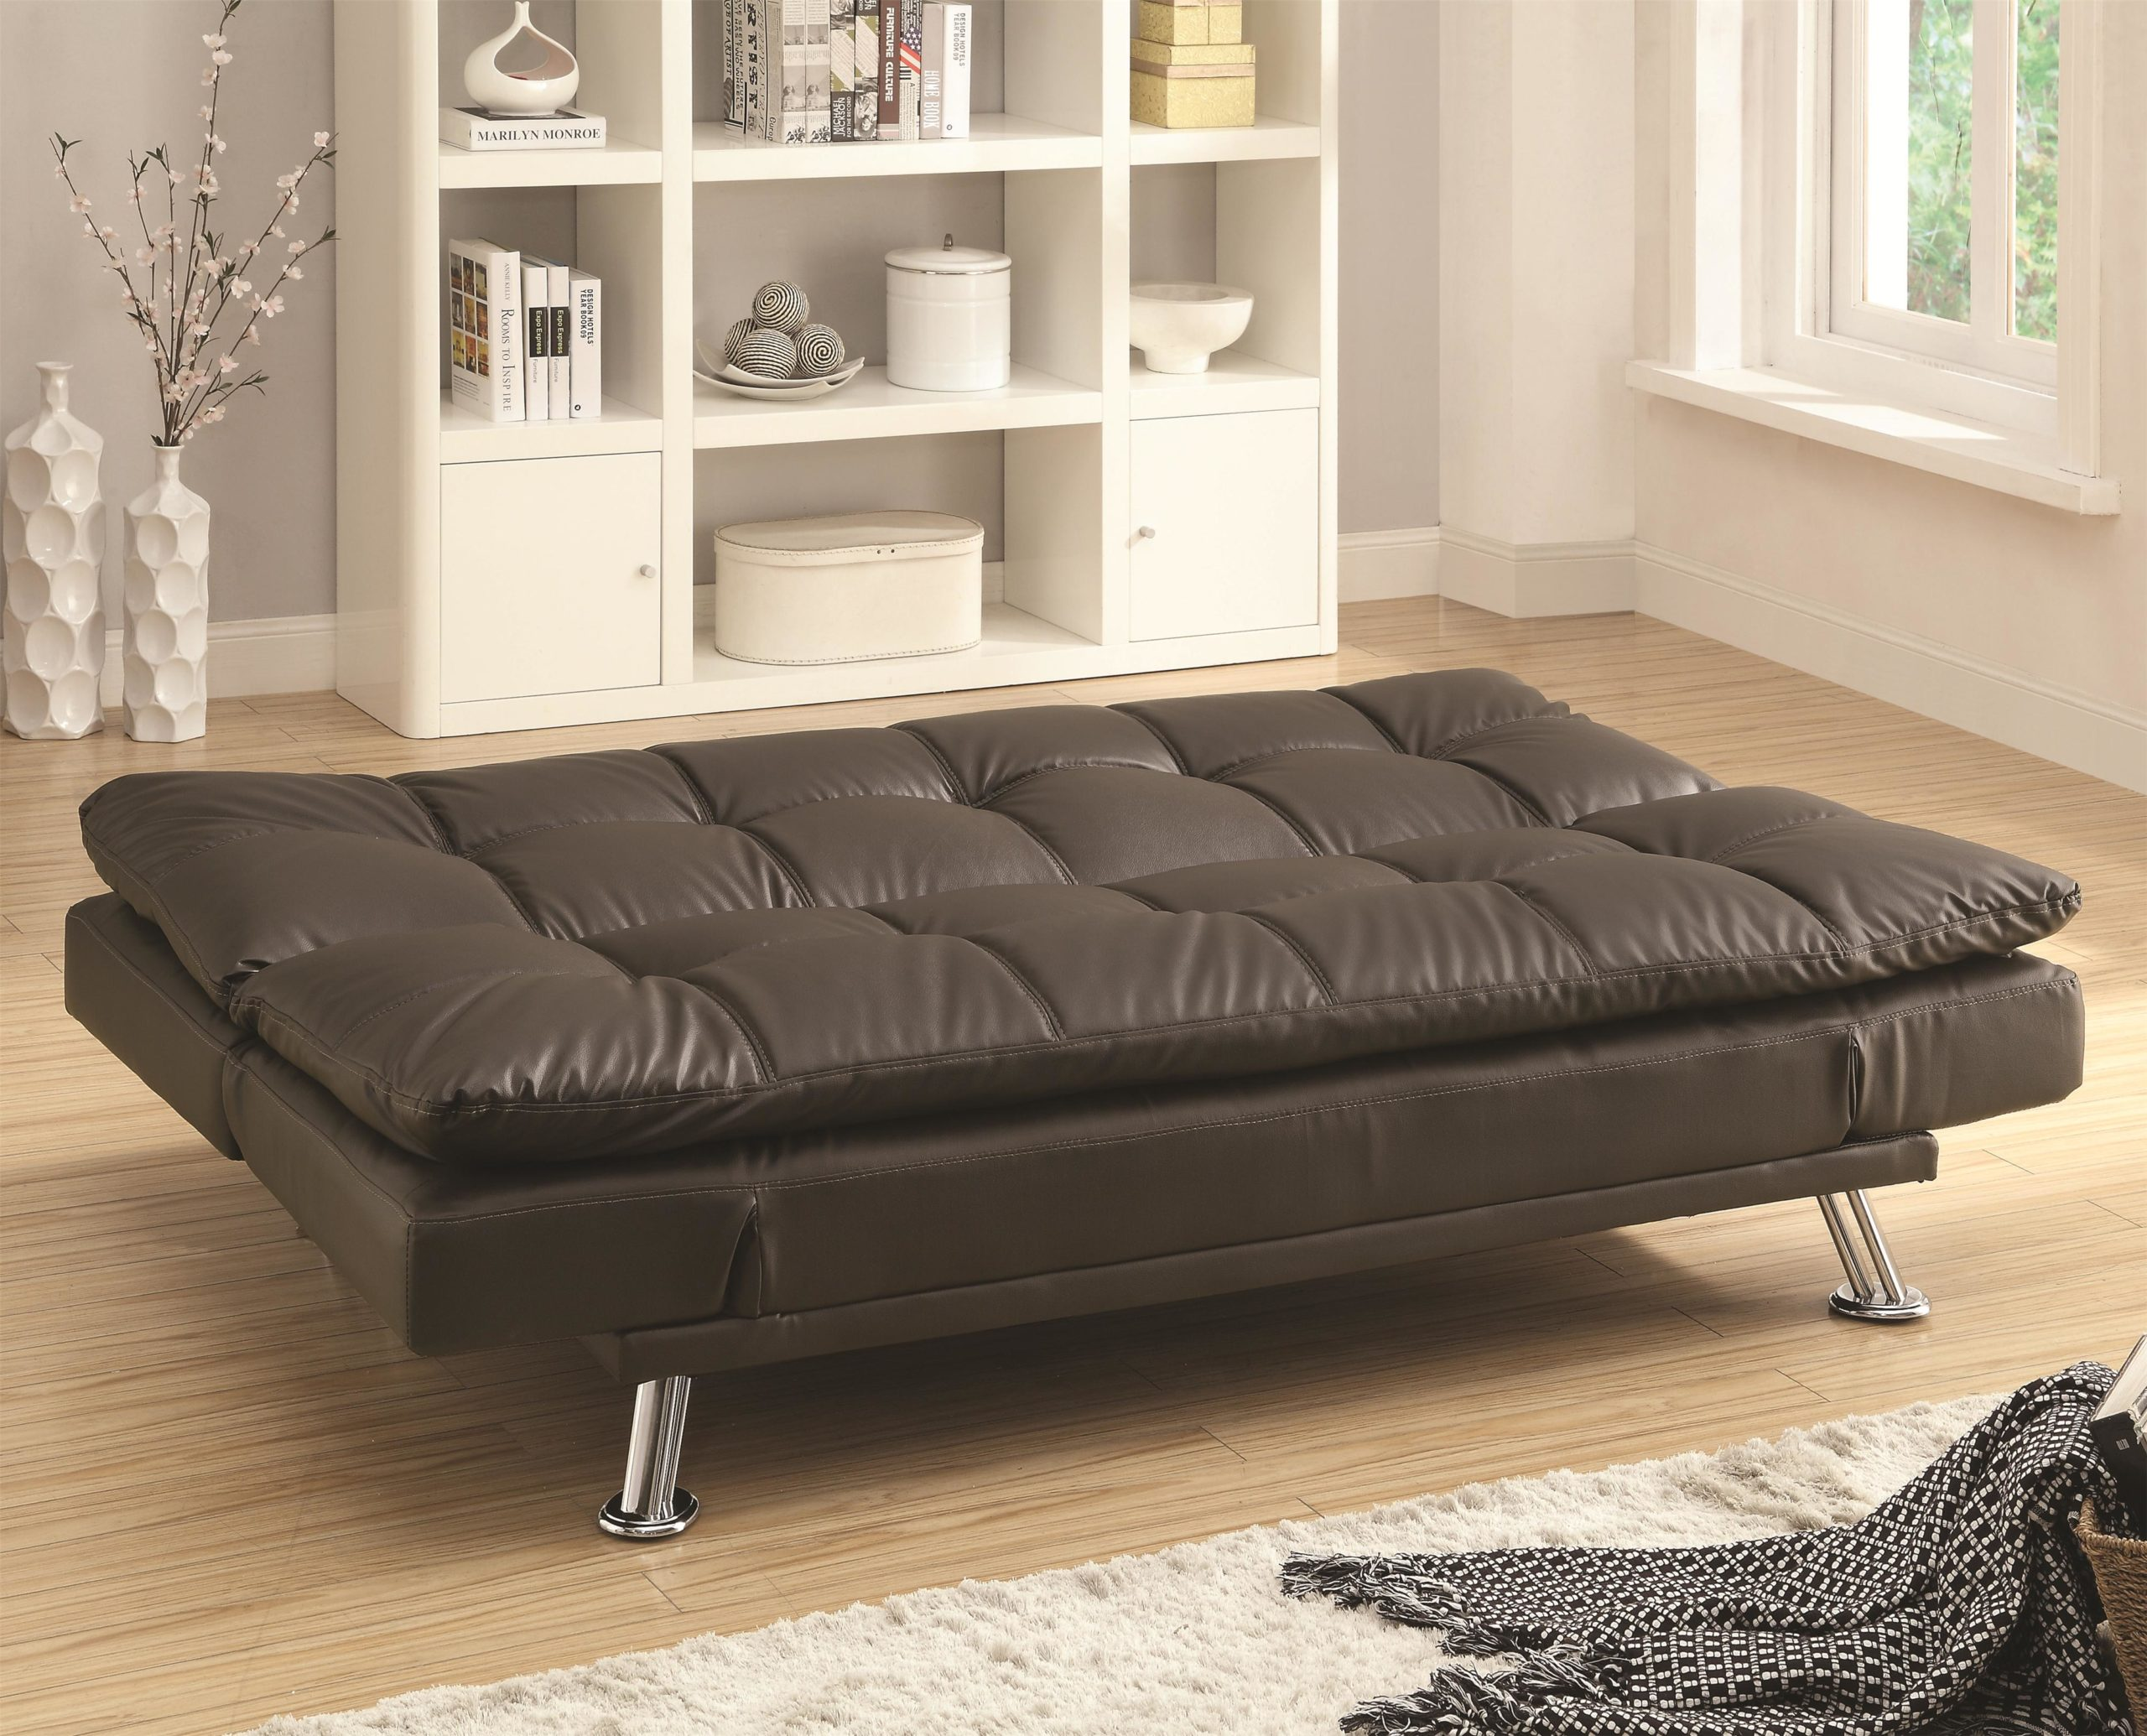 Sofa Bed in Futon Style with Chrome Legs